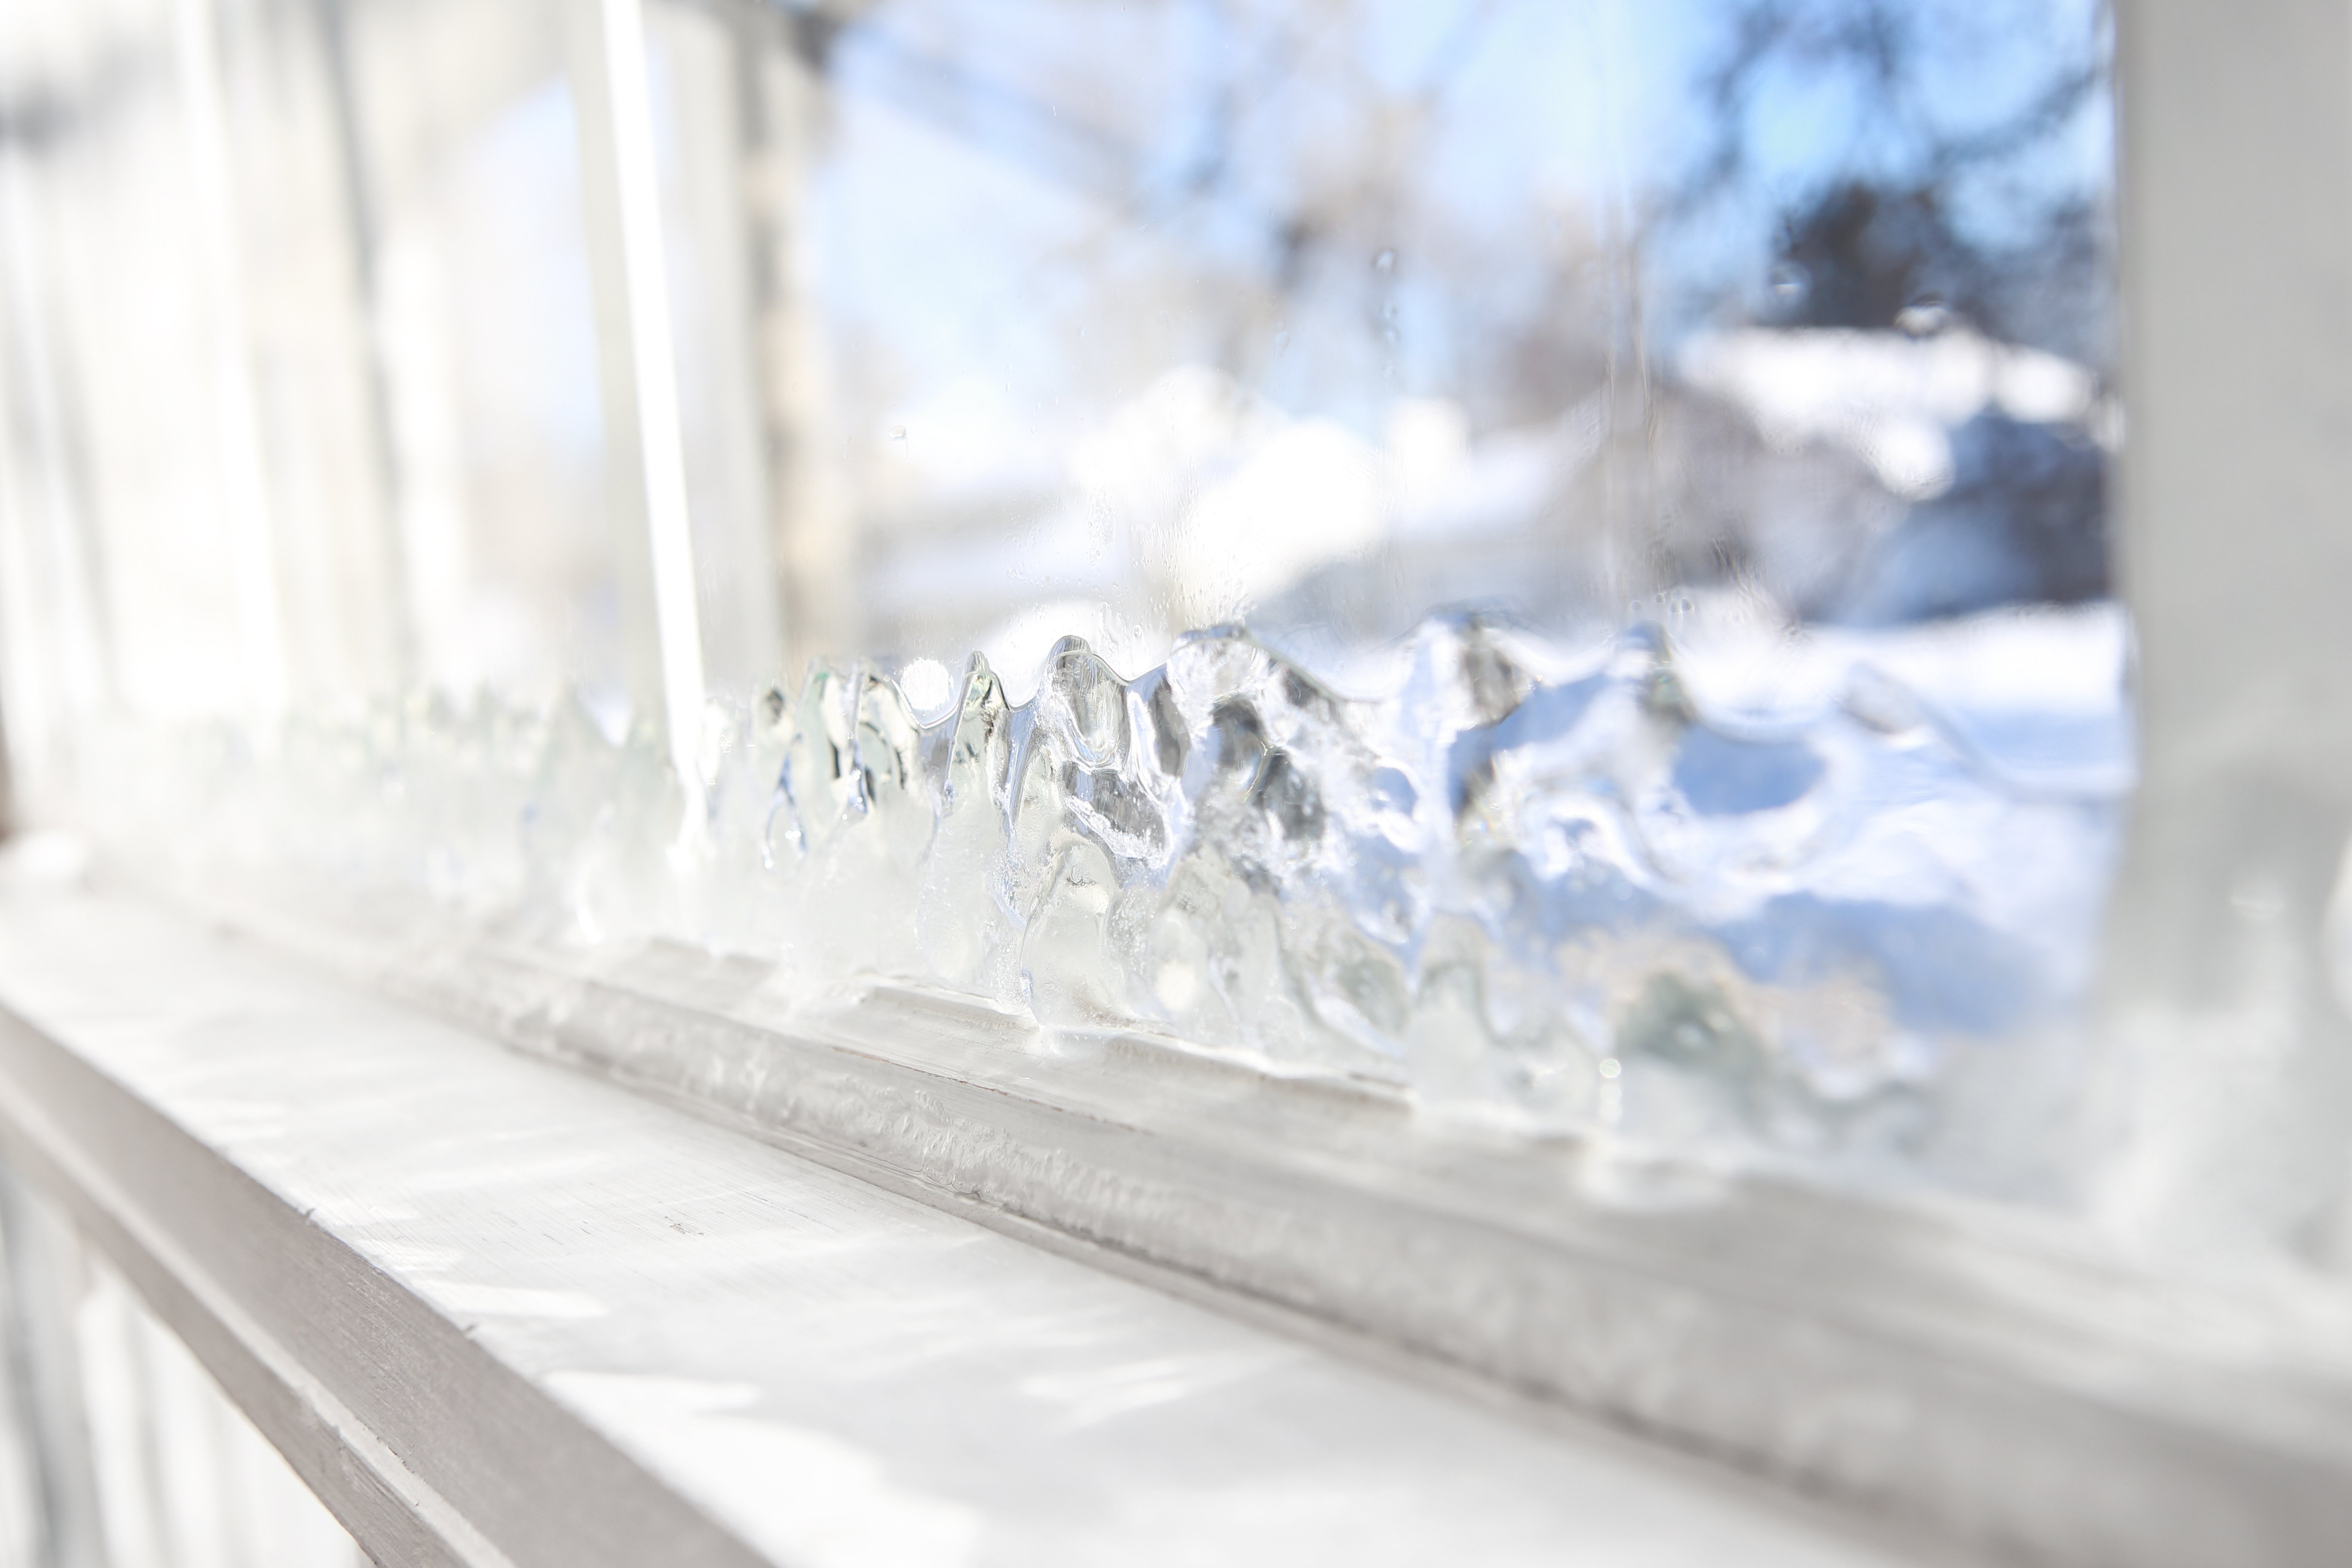 Weatherproofing your home for winter, home energy efficiency